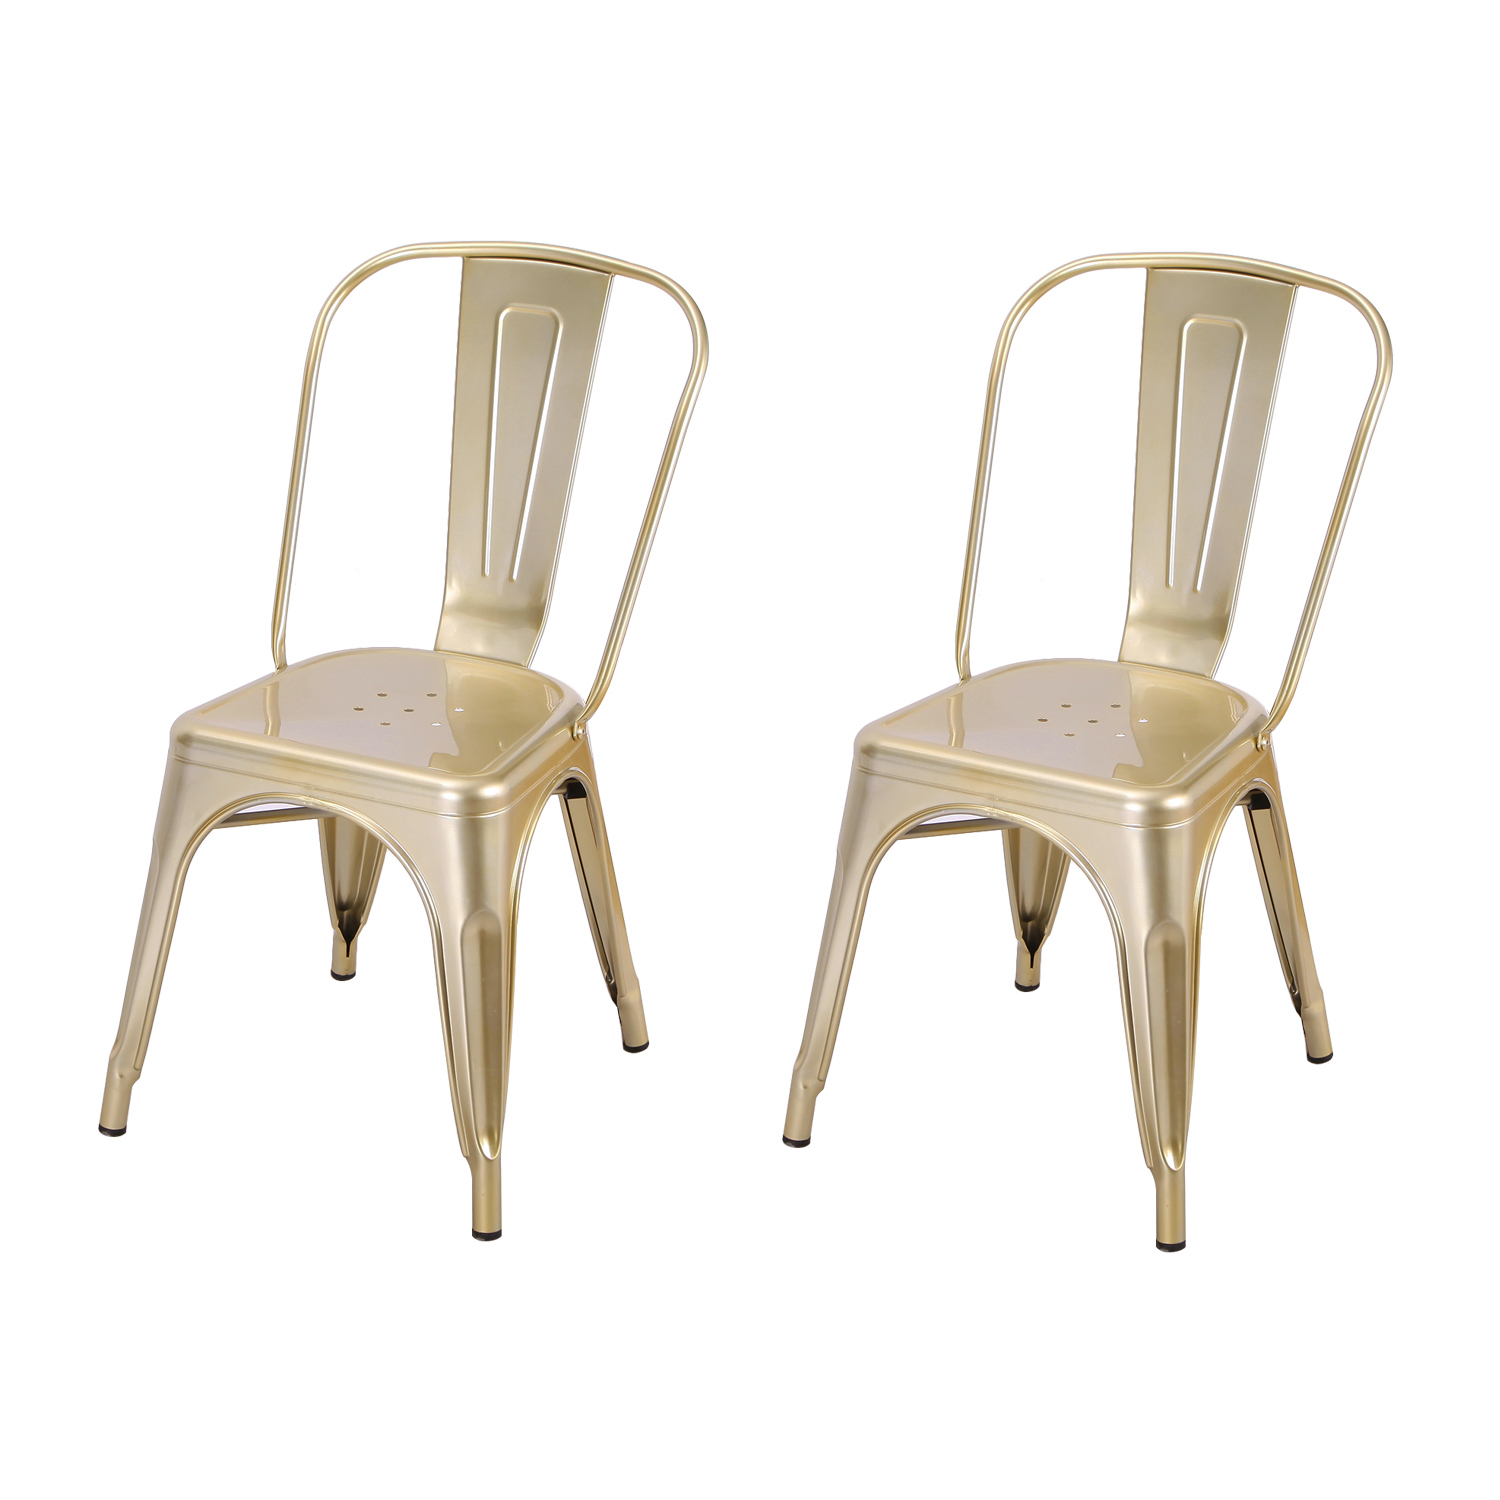 gold dining chairs amazon uk garden chair covers decenthome light metal set of two en stackable tolix style industrial chic bistro cafe